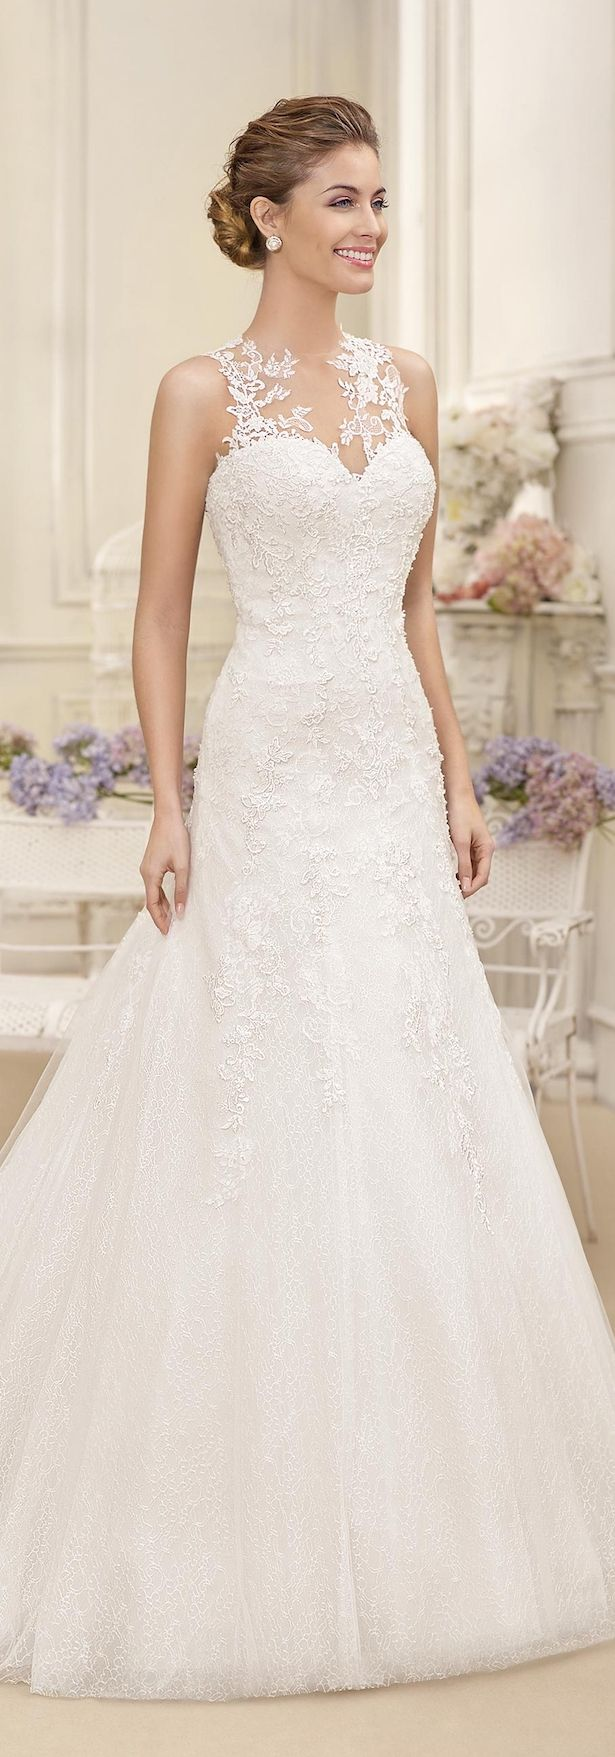 Where to find long sleeve wedding dresses  Wedding Dresses by Fara Sposa  Bridal Collection  Bridal